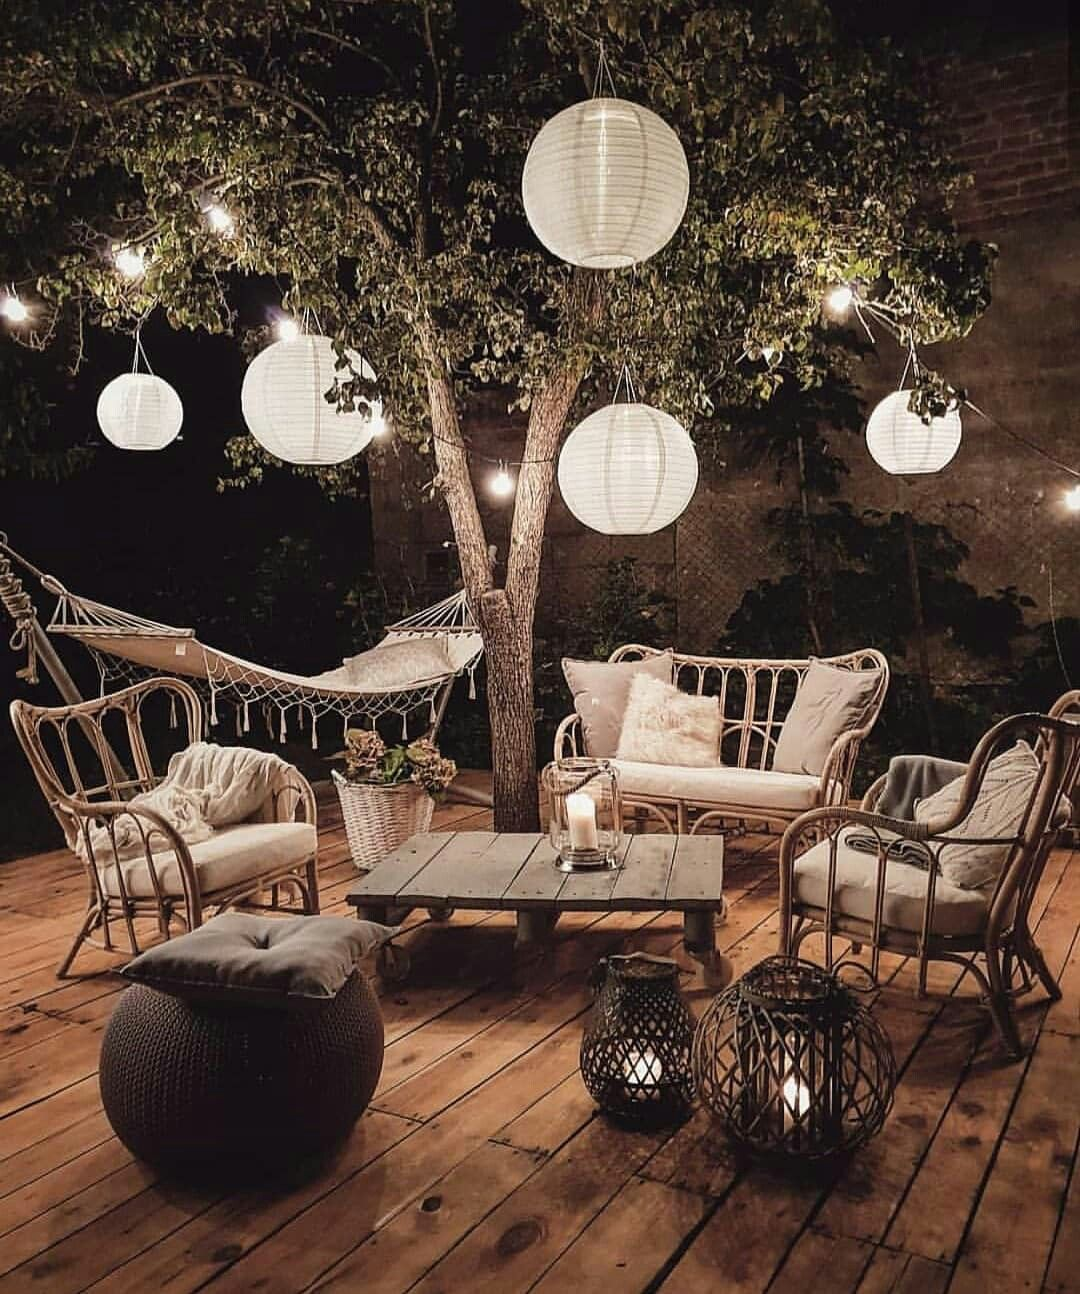 Photo of I can picture so many fun nights with family and friends here #balconylighting I…